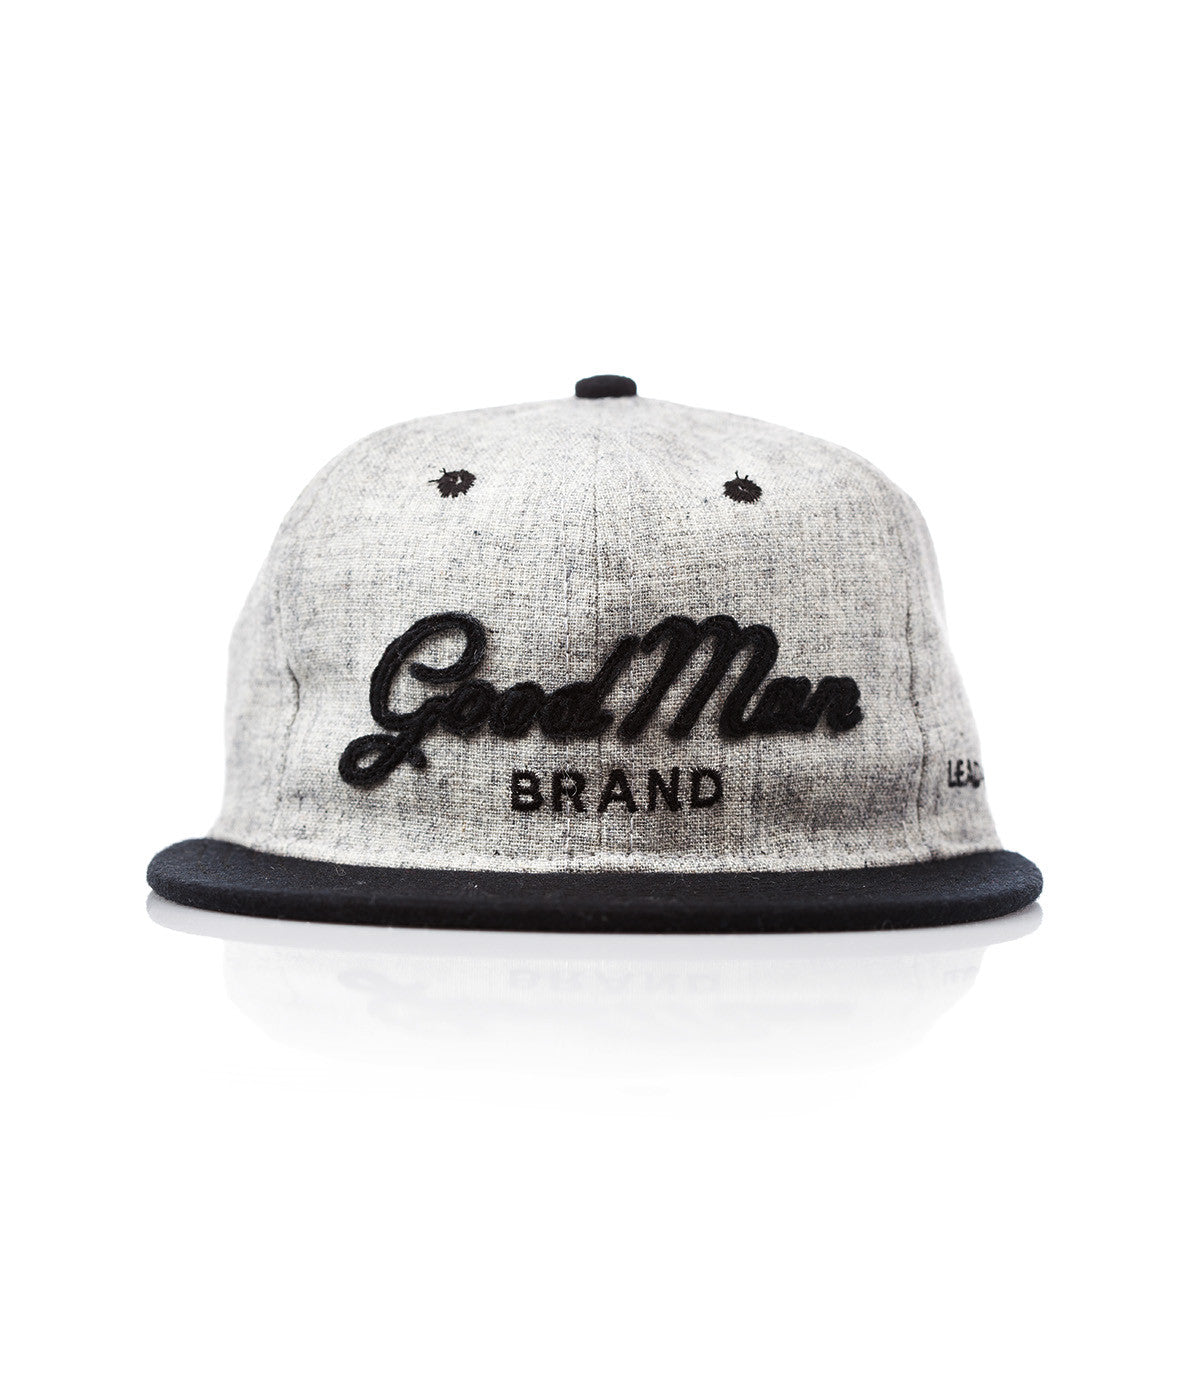 Good Man Brand x Ebbets Field Flannels Logo Ballcap - Ball Caps - Good Man Brand